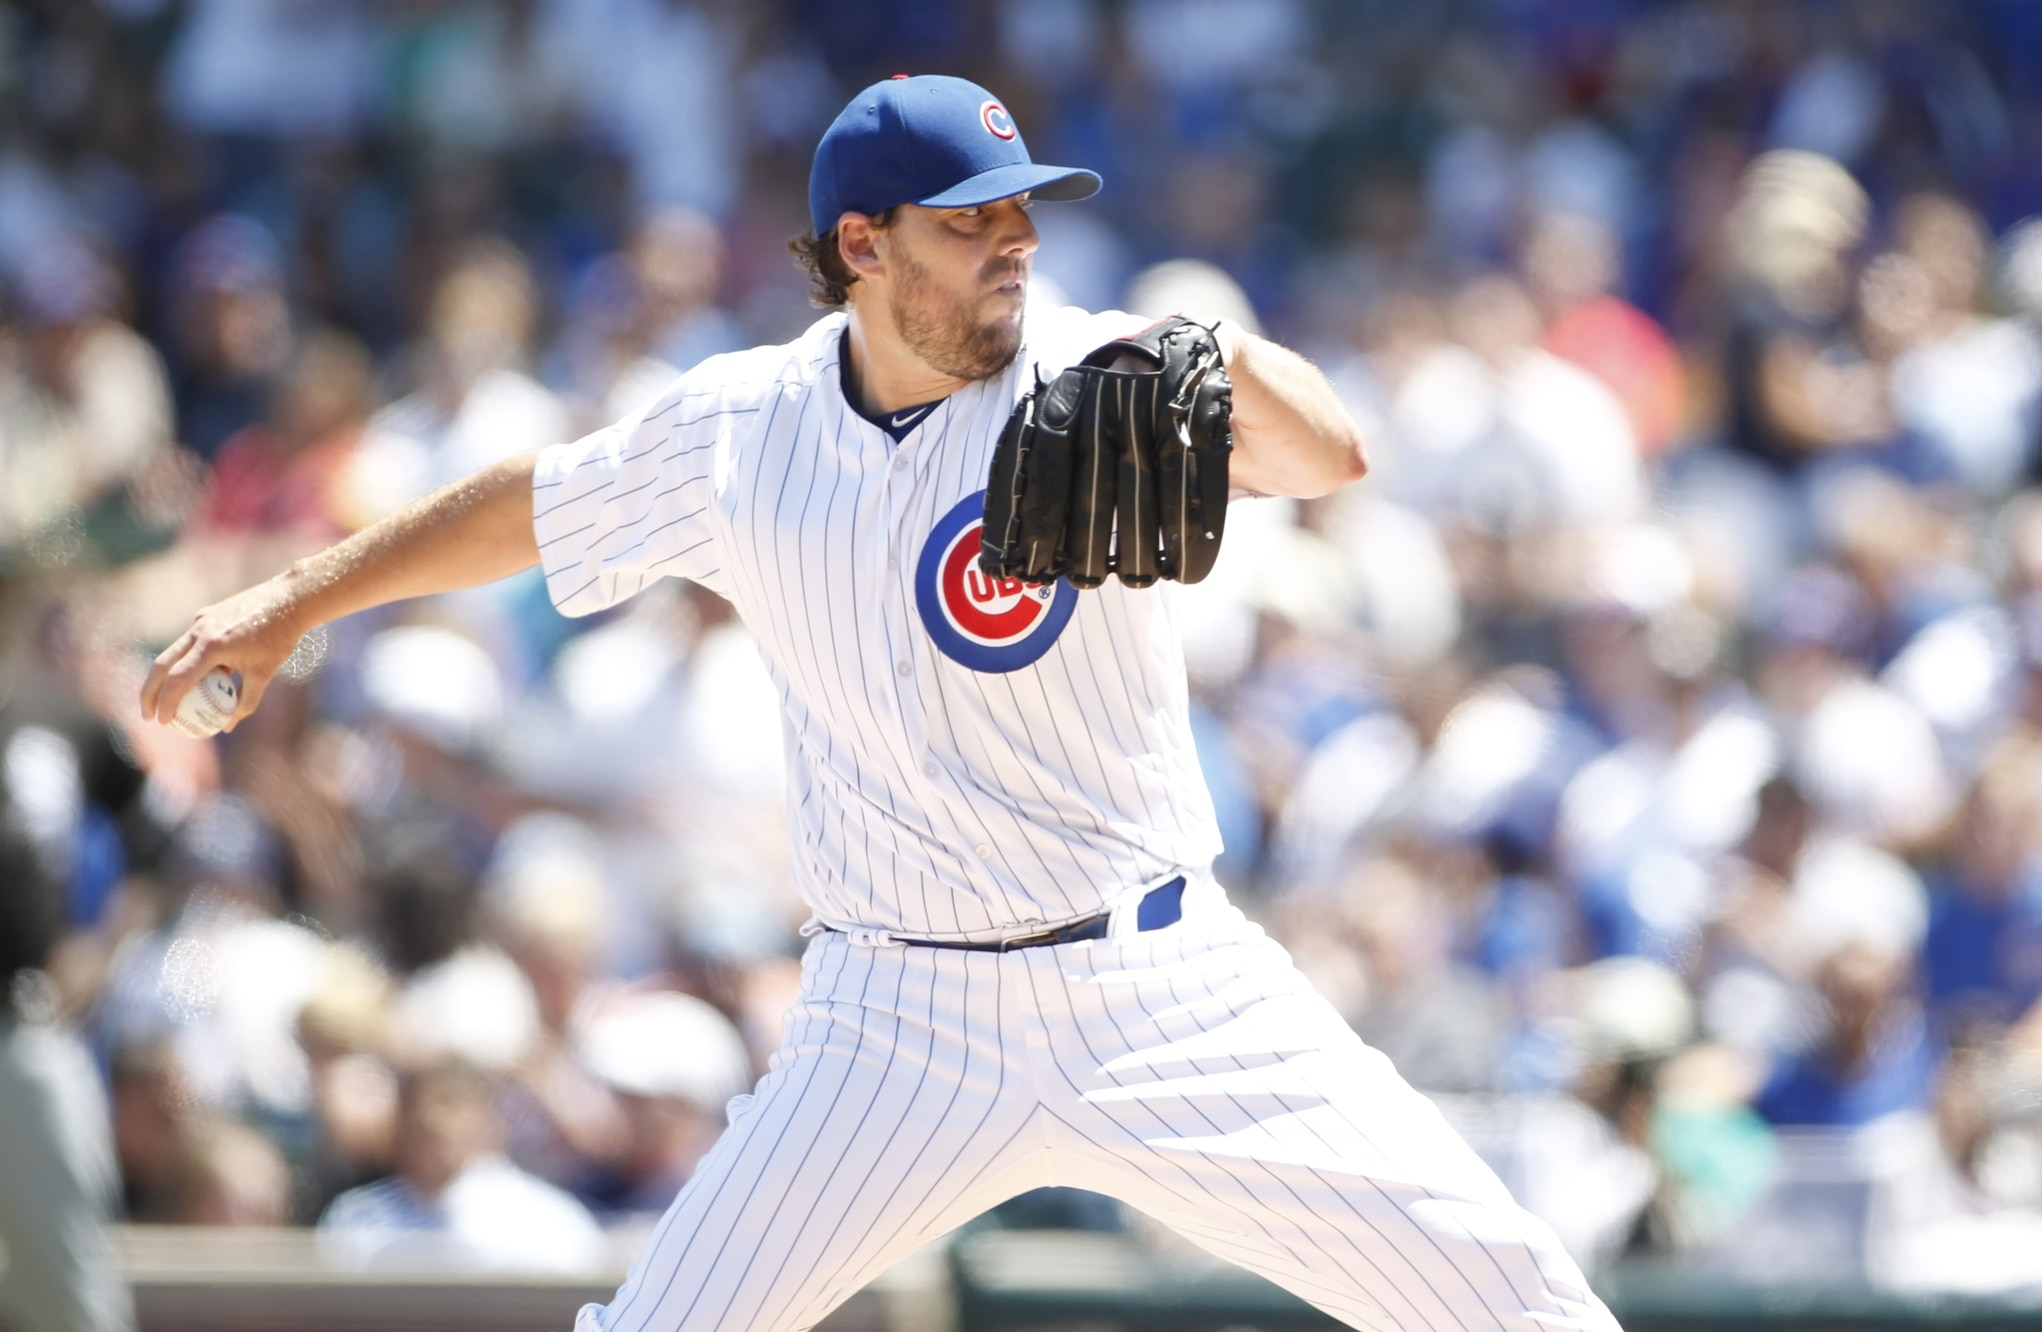 Cubs starter John Lackey hits four batters in his start Tuesday.